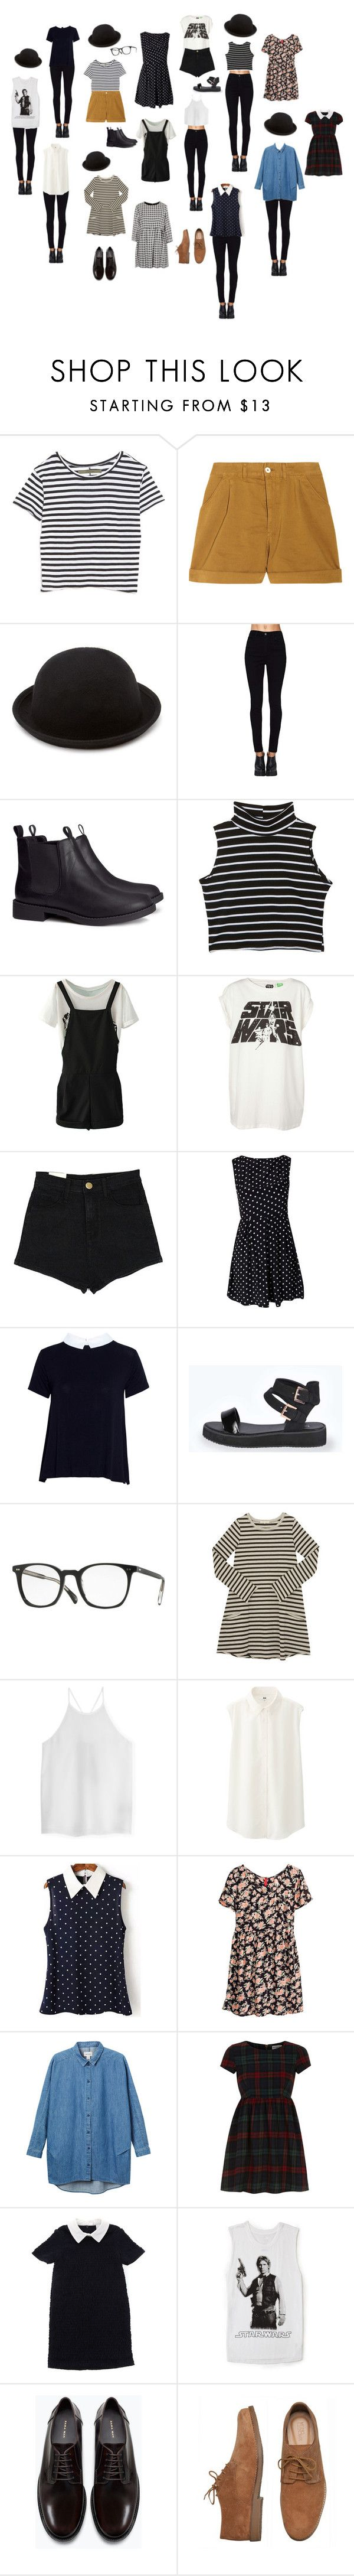 """Bowler Hat Outfits"" by jessi-jonasze ❤ liked on Polyvore featuring Enza Costa, Levi's Made & Crafted, Forever 21, H&M, Pull&Bear, AX Paris, Boohoo, Oliver Peoples, TIBI and Uniqlo"